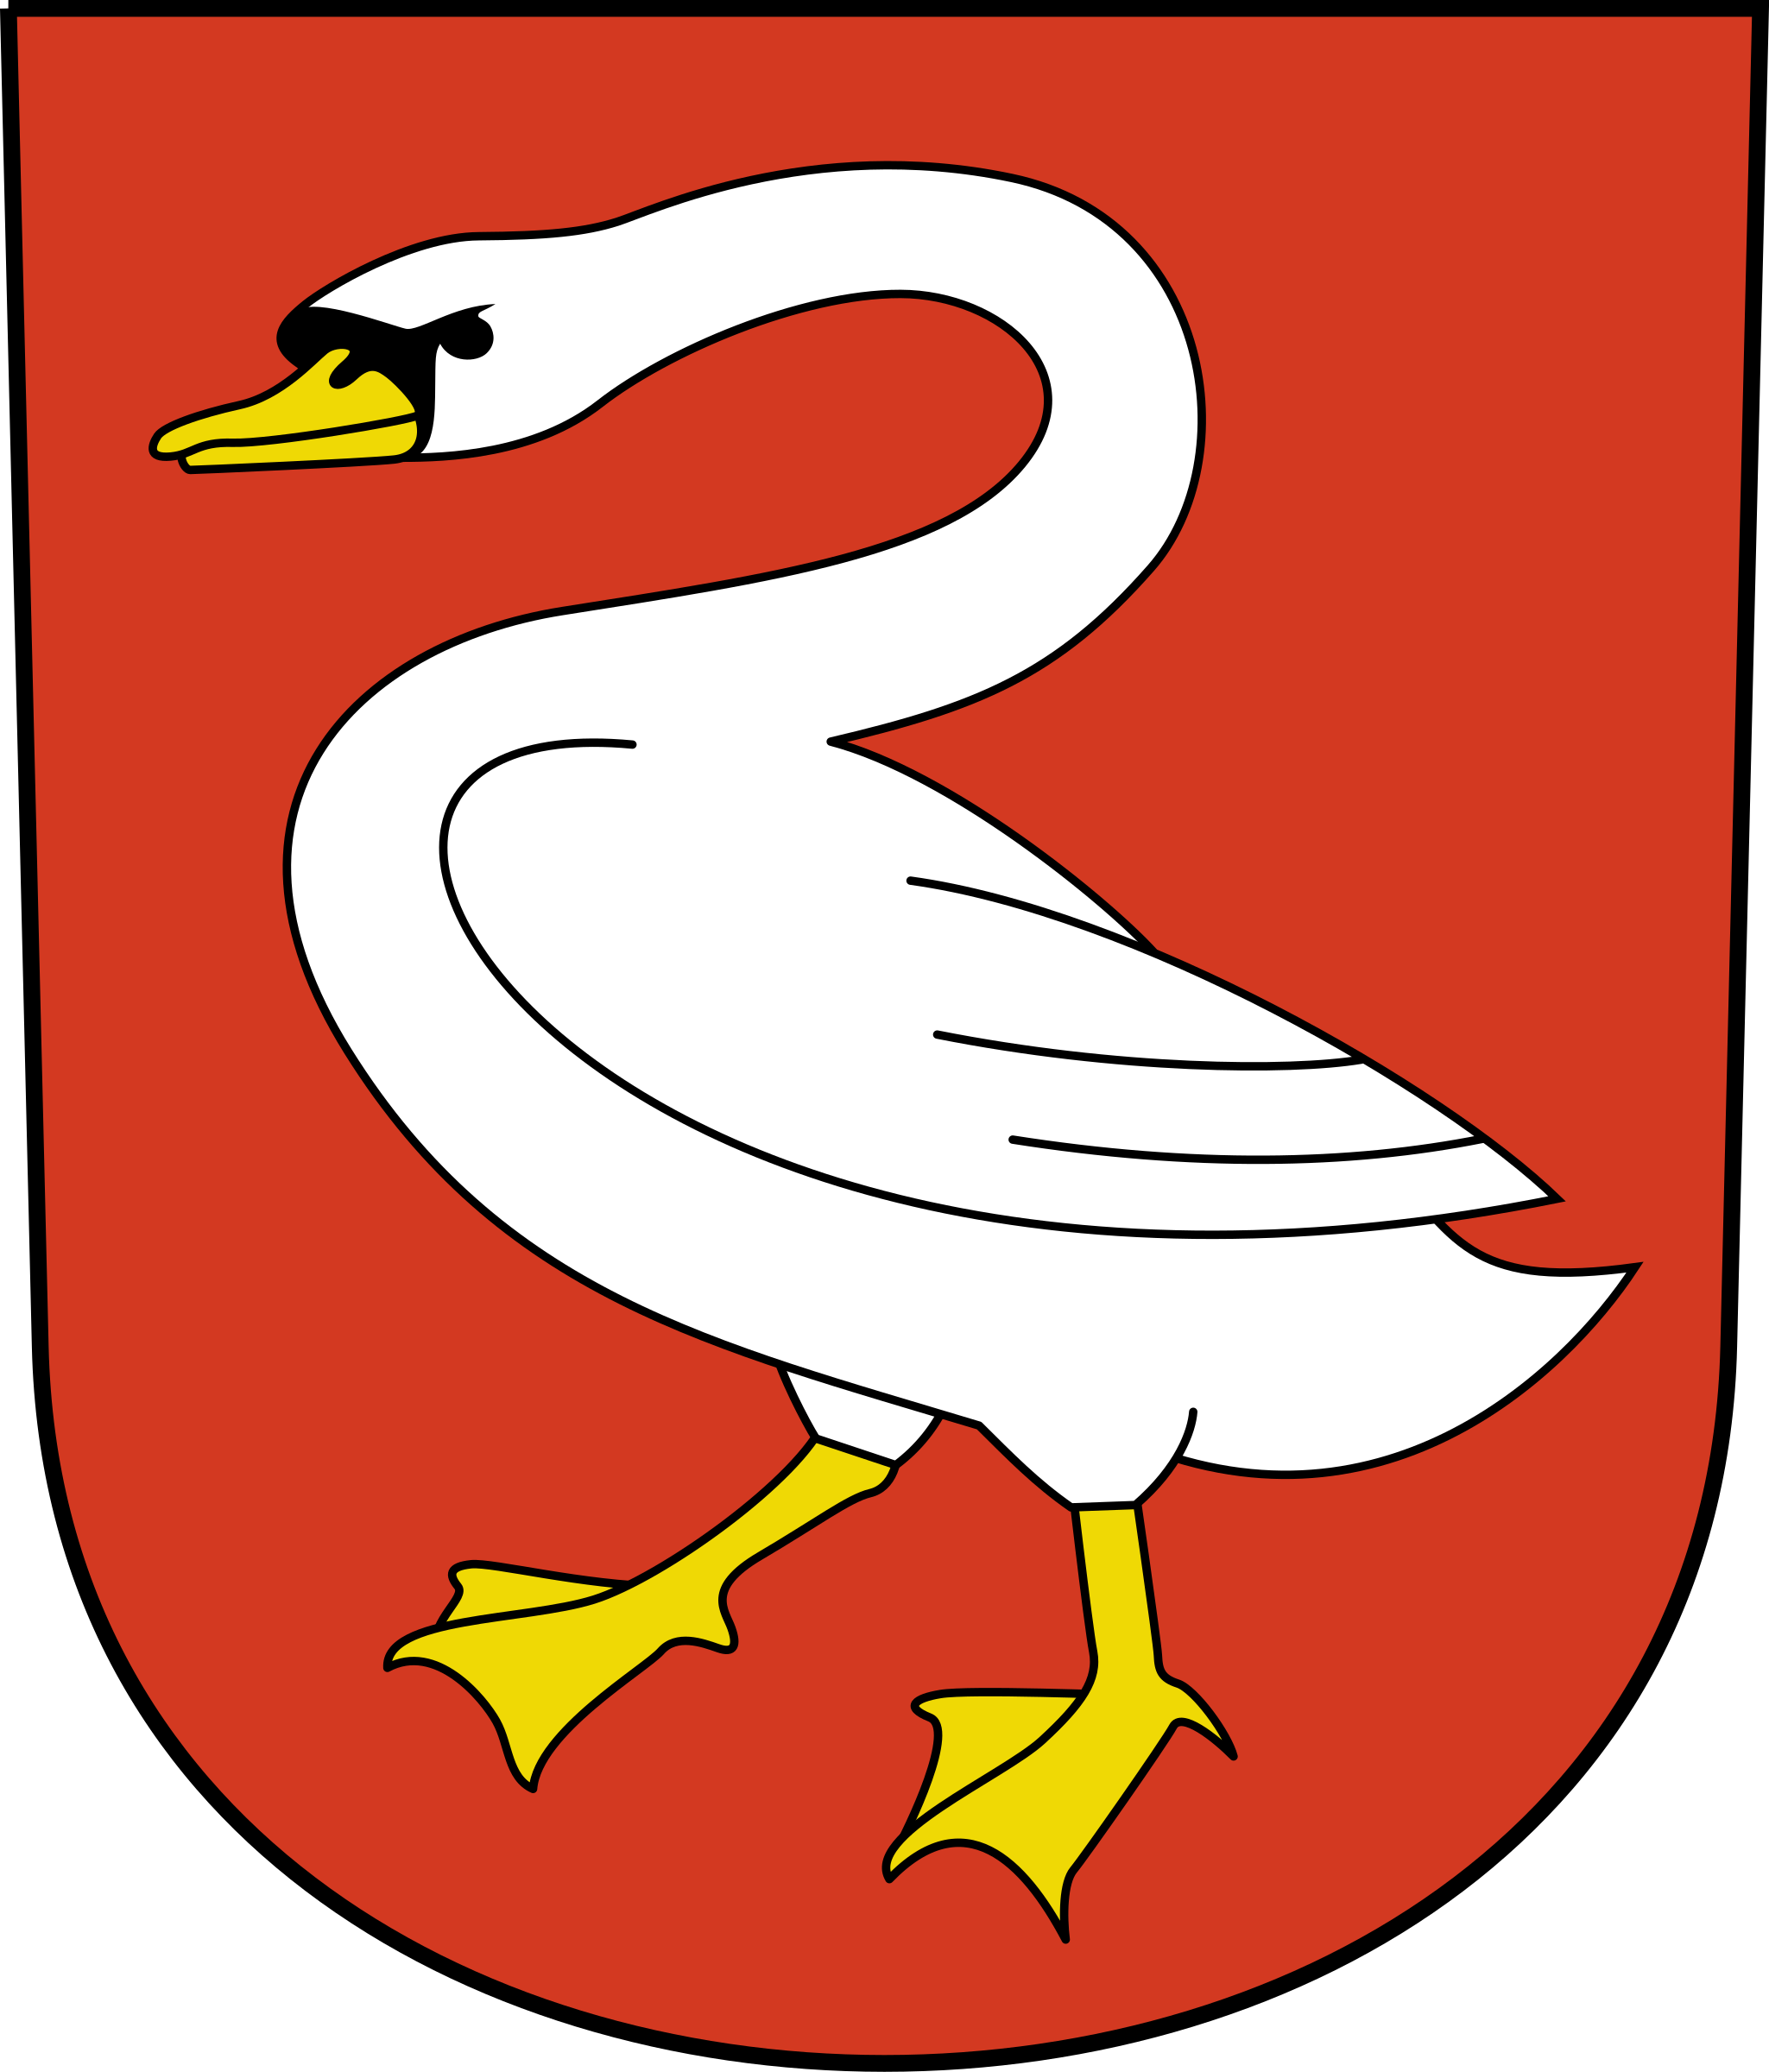 Horgen - Coat of arms 1 by wipp